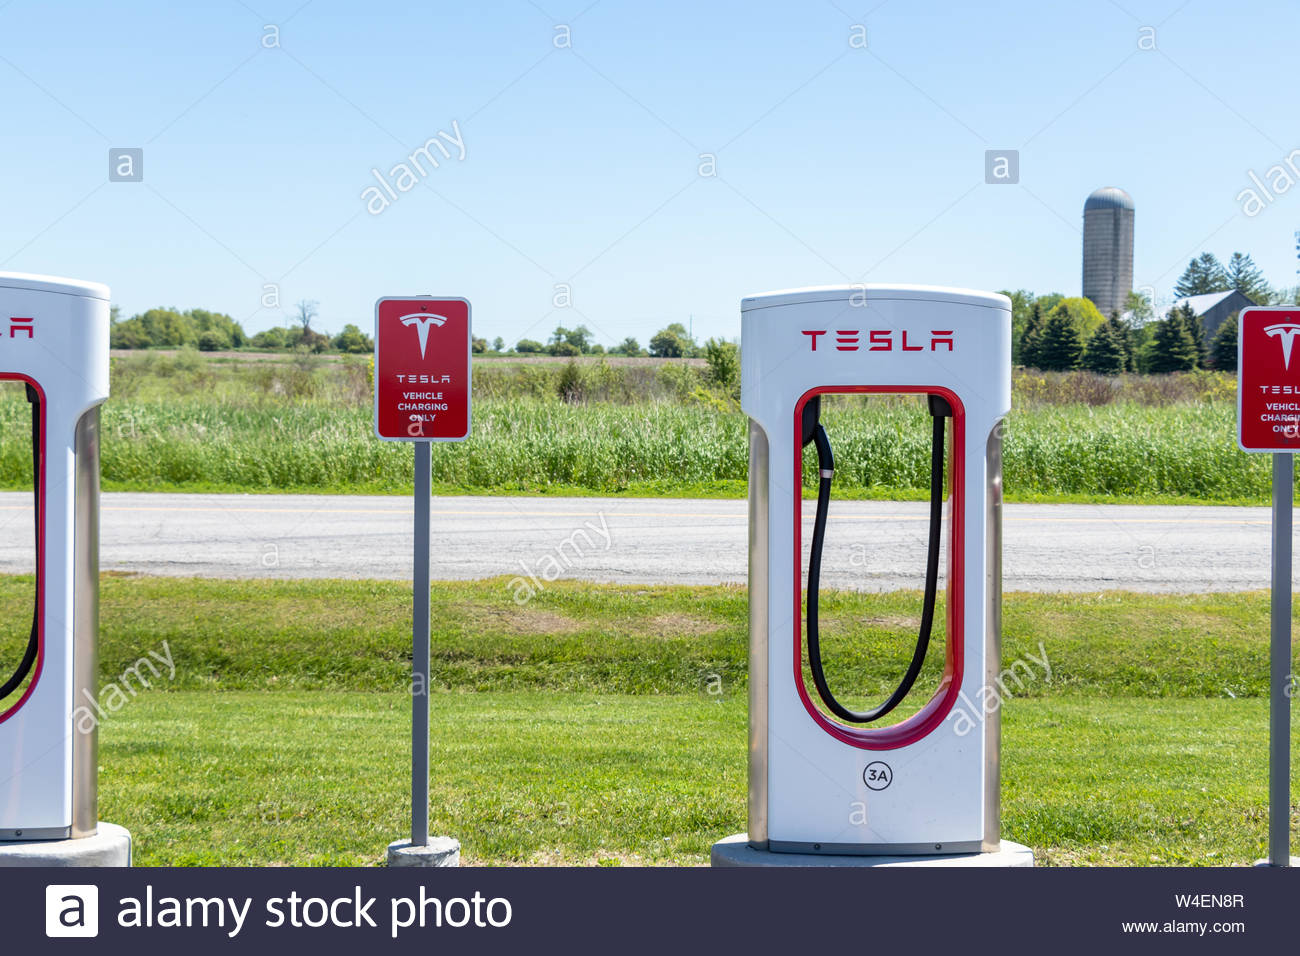 Tesla Supercharger and Tesla Electric Vehicle Only warning sign 1300x956